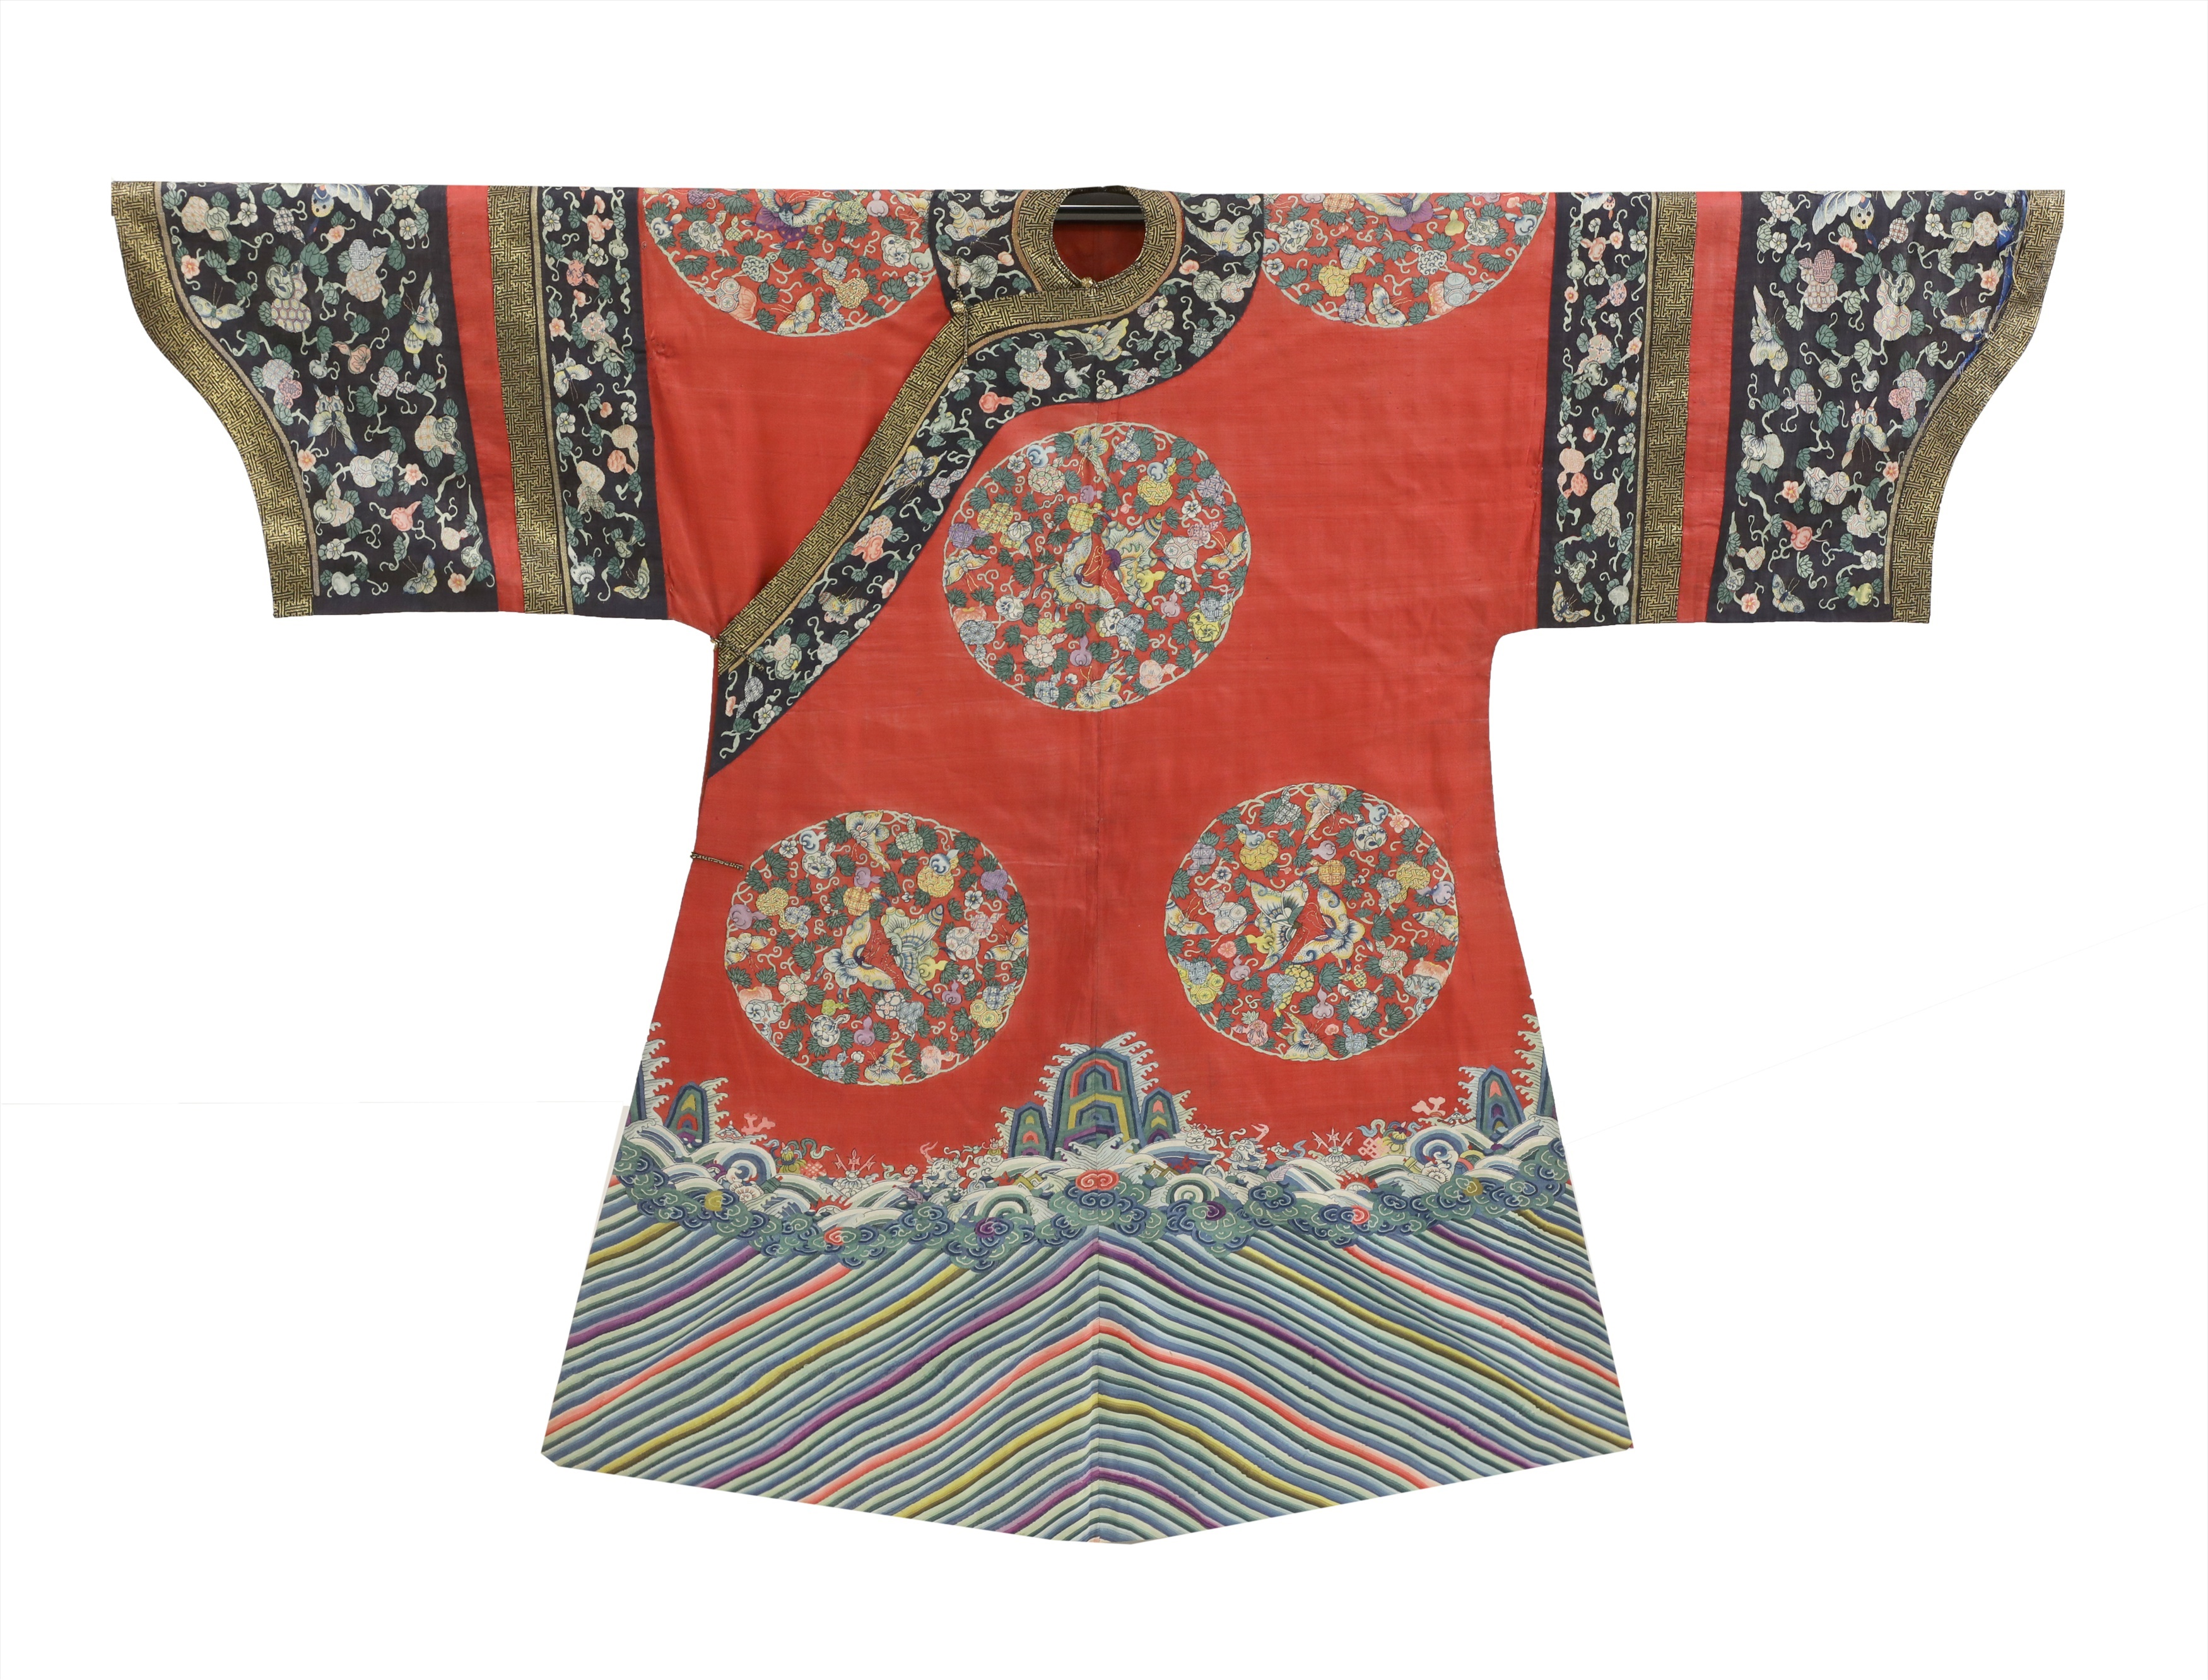 A Chinese embroidered kesi red robe